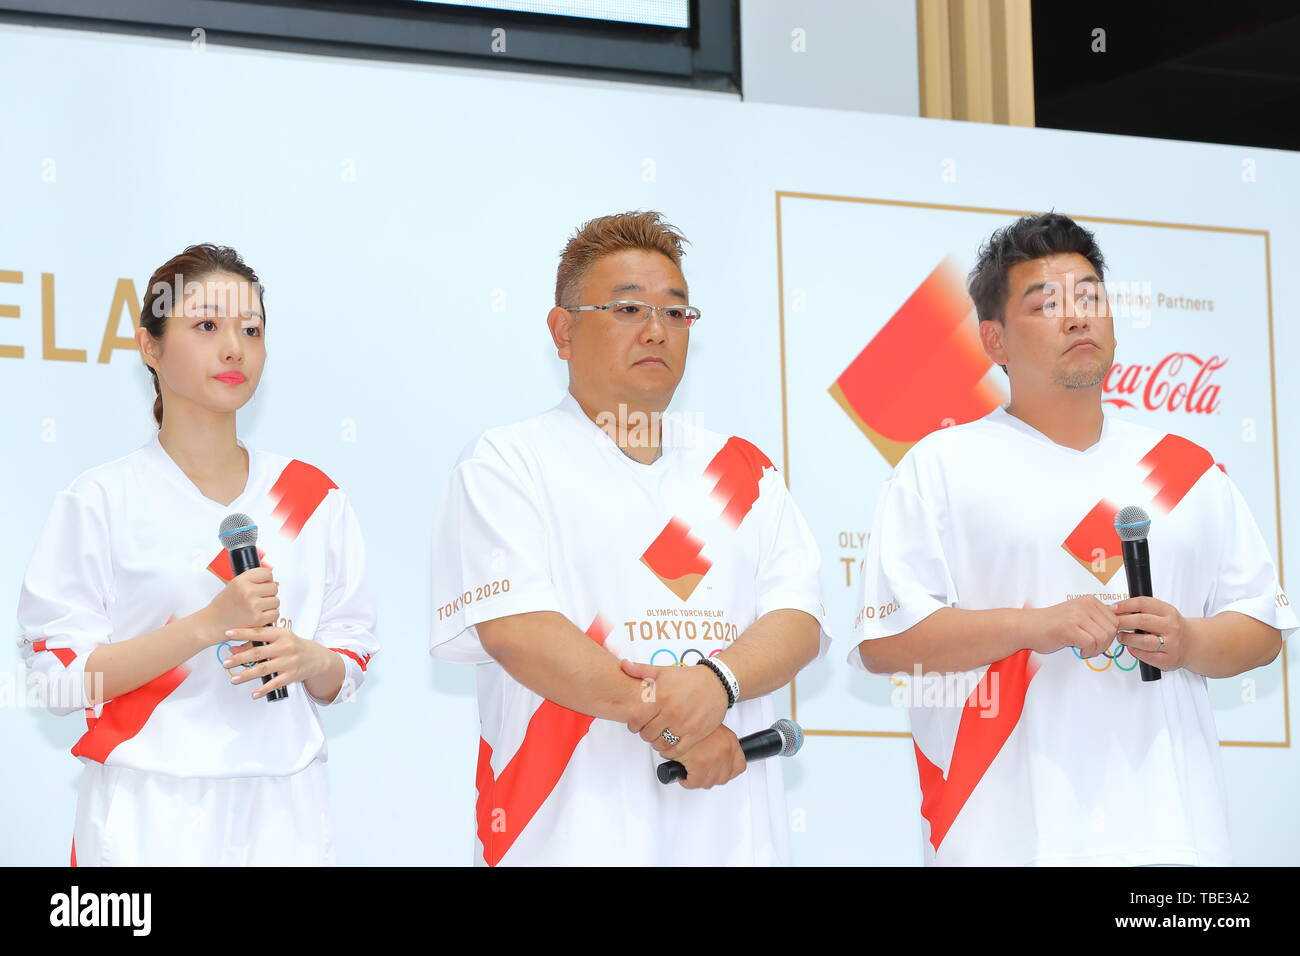 Tokyo, Japan. 1st June, 2019. (L-R) Satomi Ishihara, Mikio Date, Takeshi Tomizawa, The Tokyo Organising Committee of the Olympic and Paralympic Games (Tokyo 2020) holds commemorative event of Torch Relay in Tokyo, Japan on June 1, 2019, 300 days before of the Japanese leg of the Tokyo 2020 Olympic Torch Relay starts. The Organising Committee unveiled an official uniform, course outline and applicant guidelines for Torch Relay Runners. Credit: Naoki Nishimura/AFLO SPORT/Alamy Live News - Stock Image